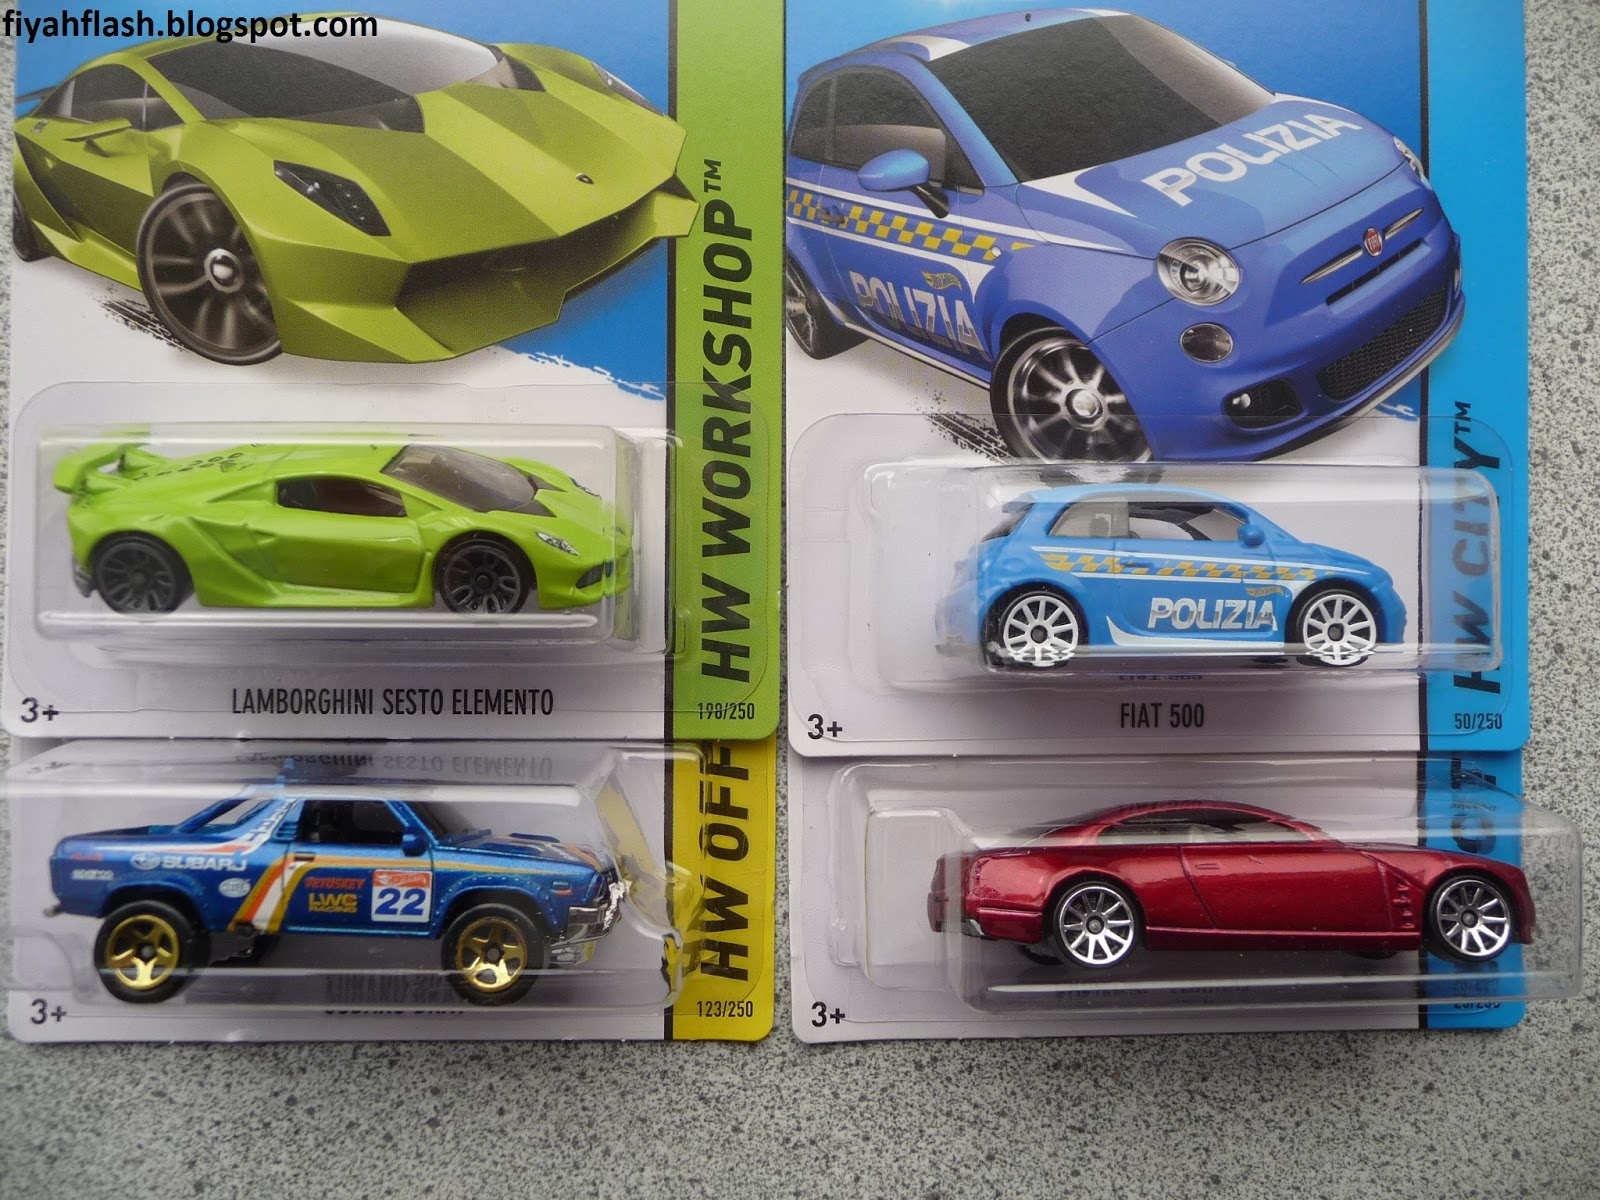 List Of 2015 Hot Wheels Treasure Hunts | myideasbedroom.com